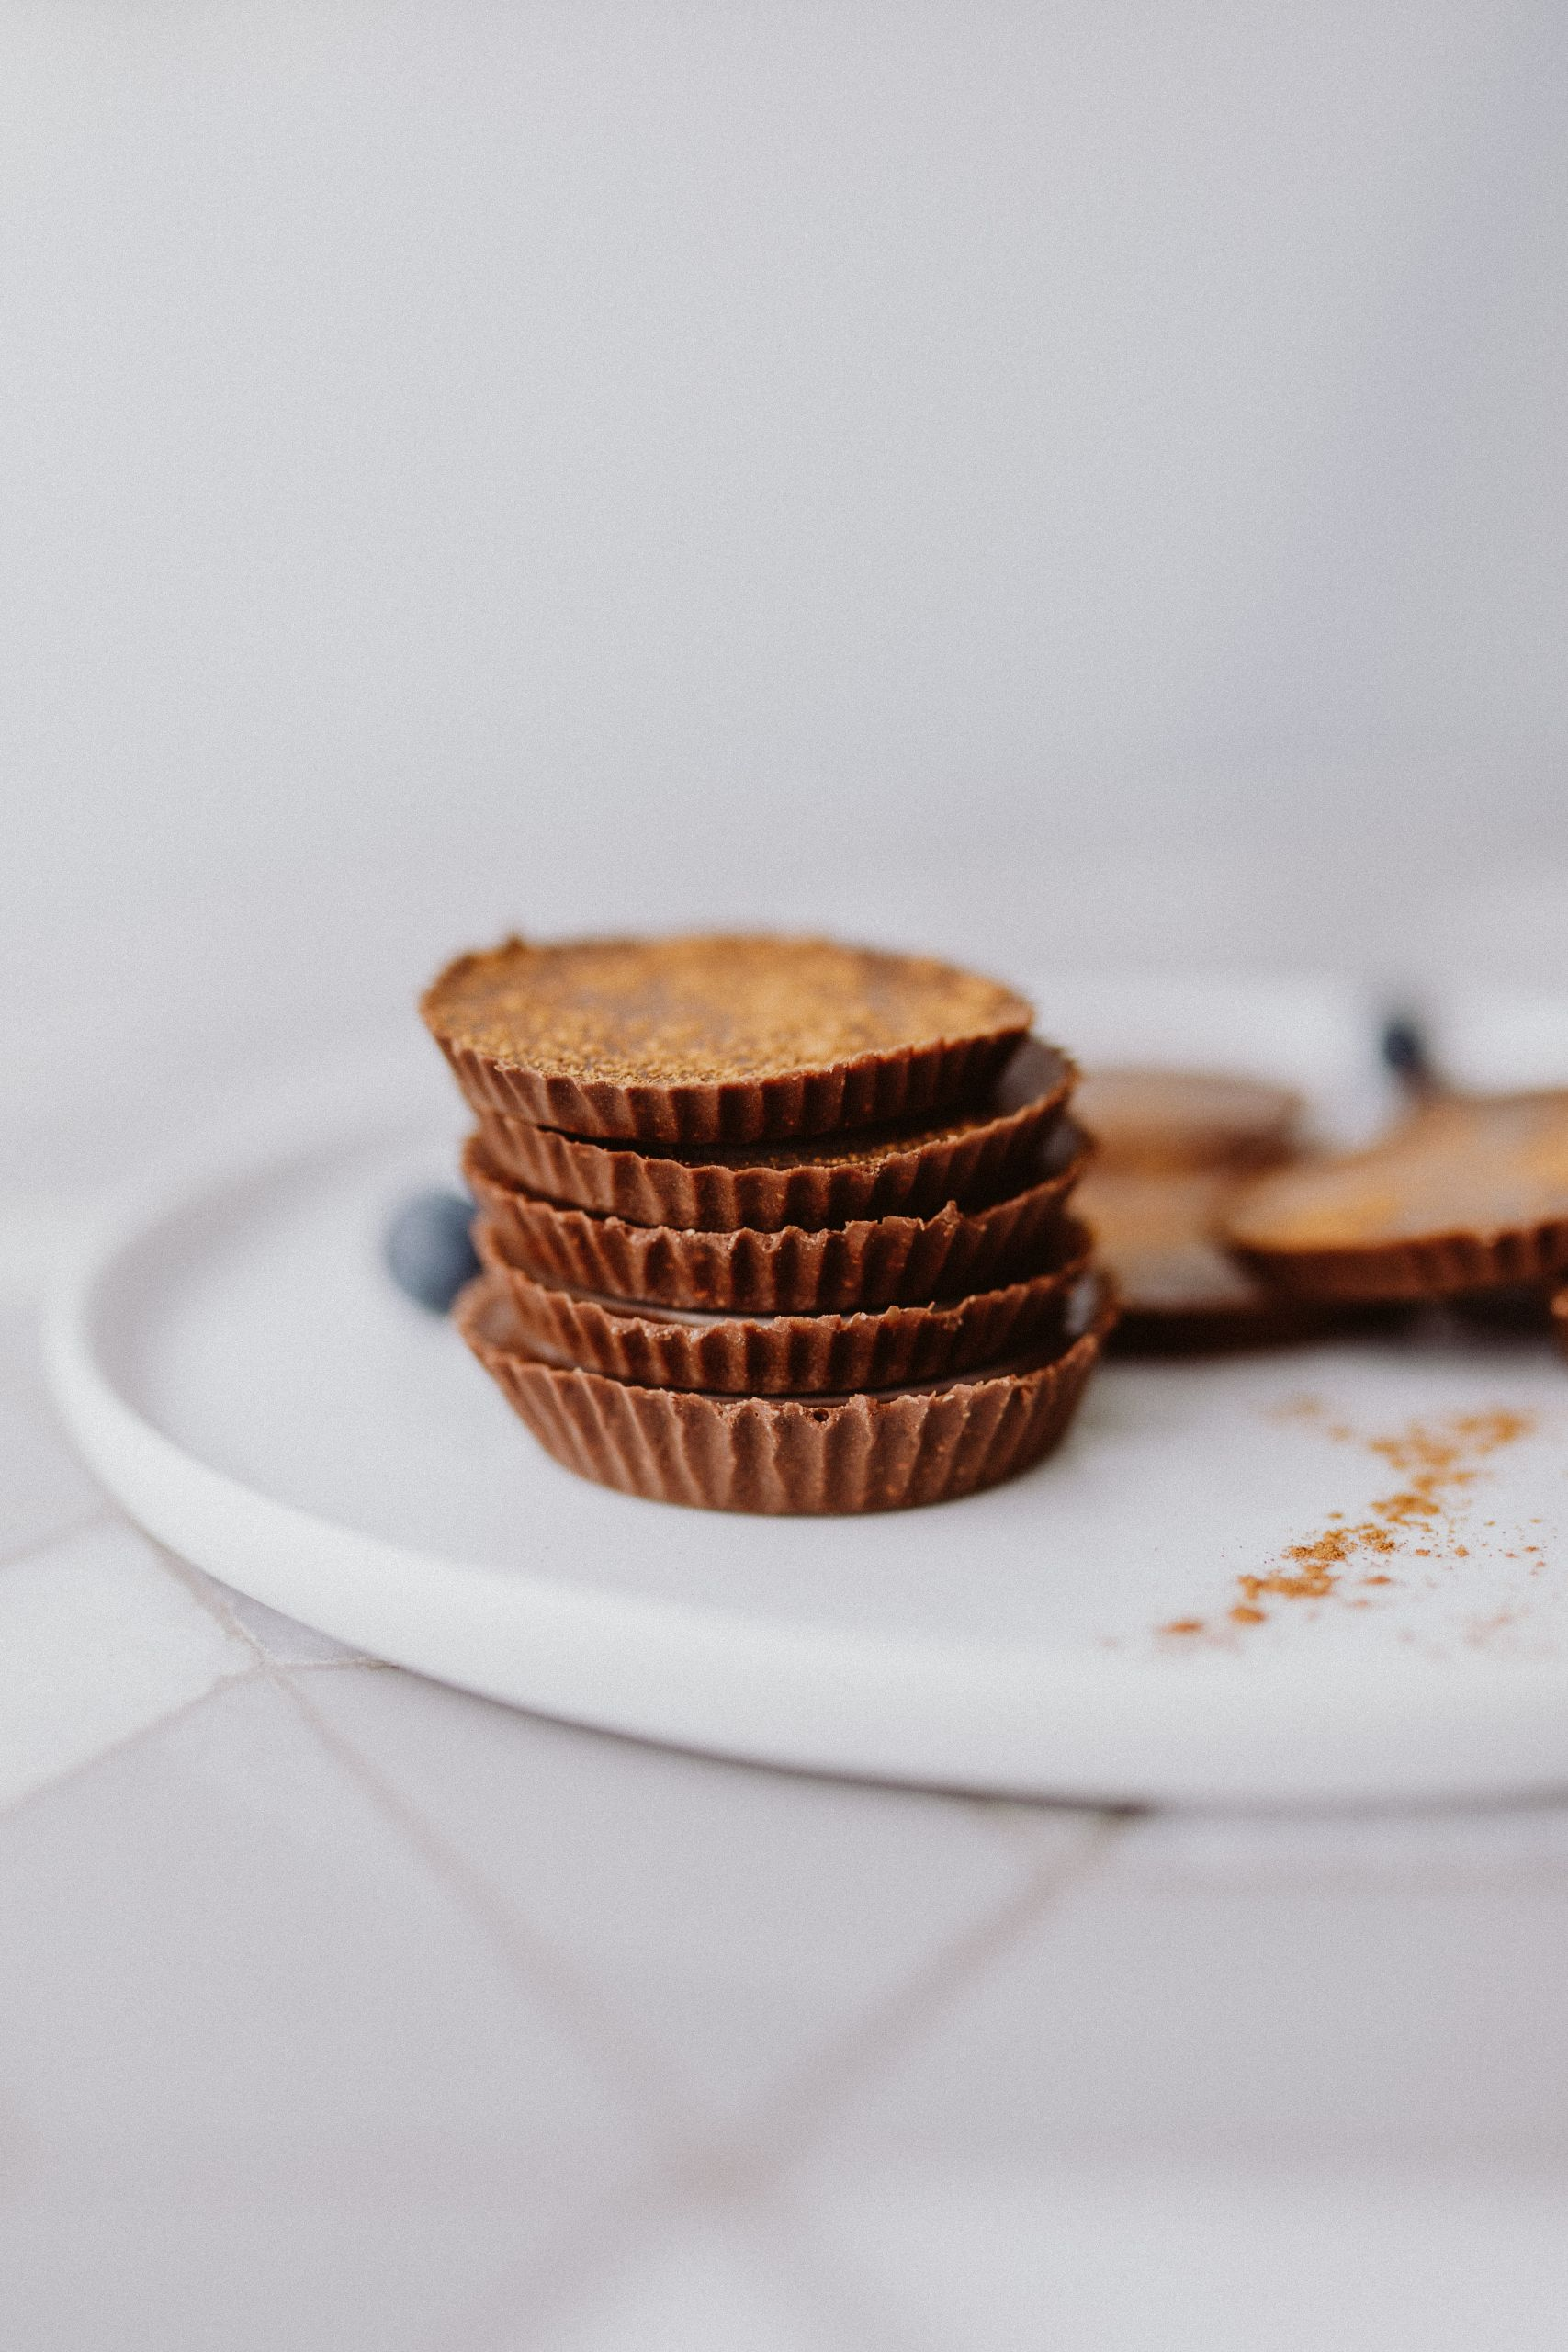 Vegan Paleo Keto Chocolate Cups